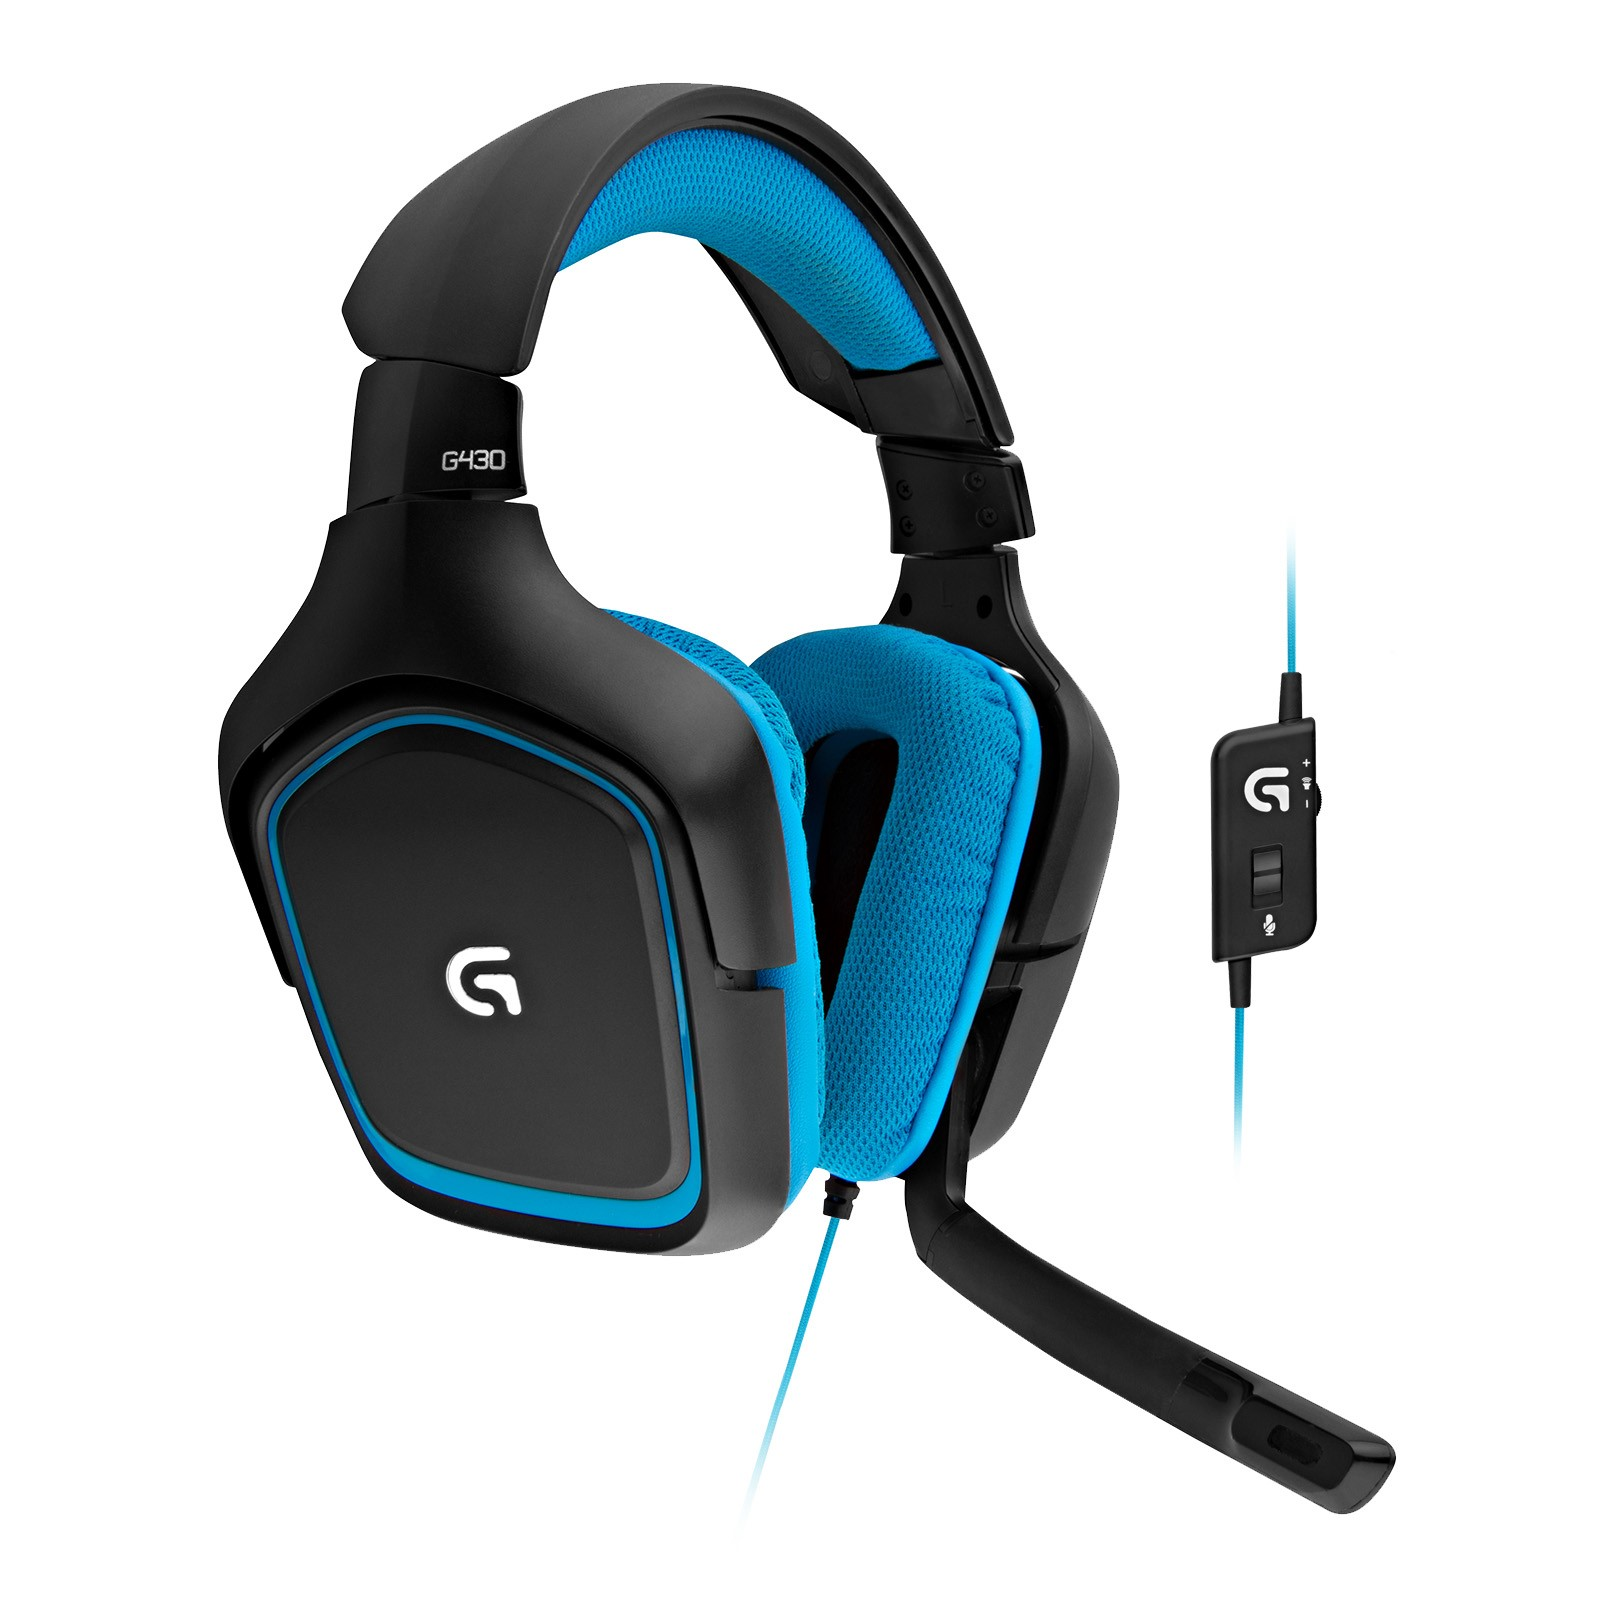 Buy Logitech G430 Surround Sound Gaming Headset